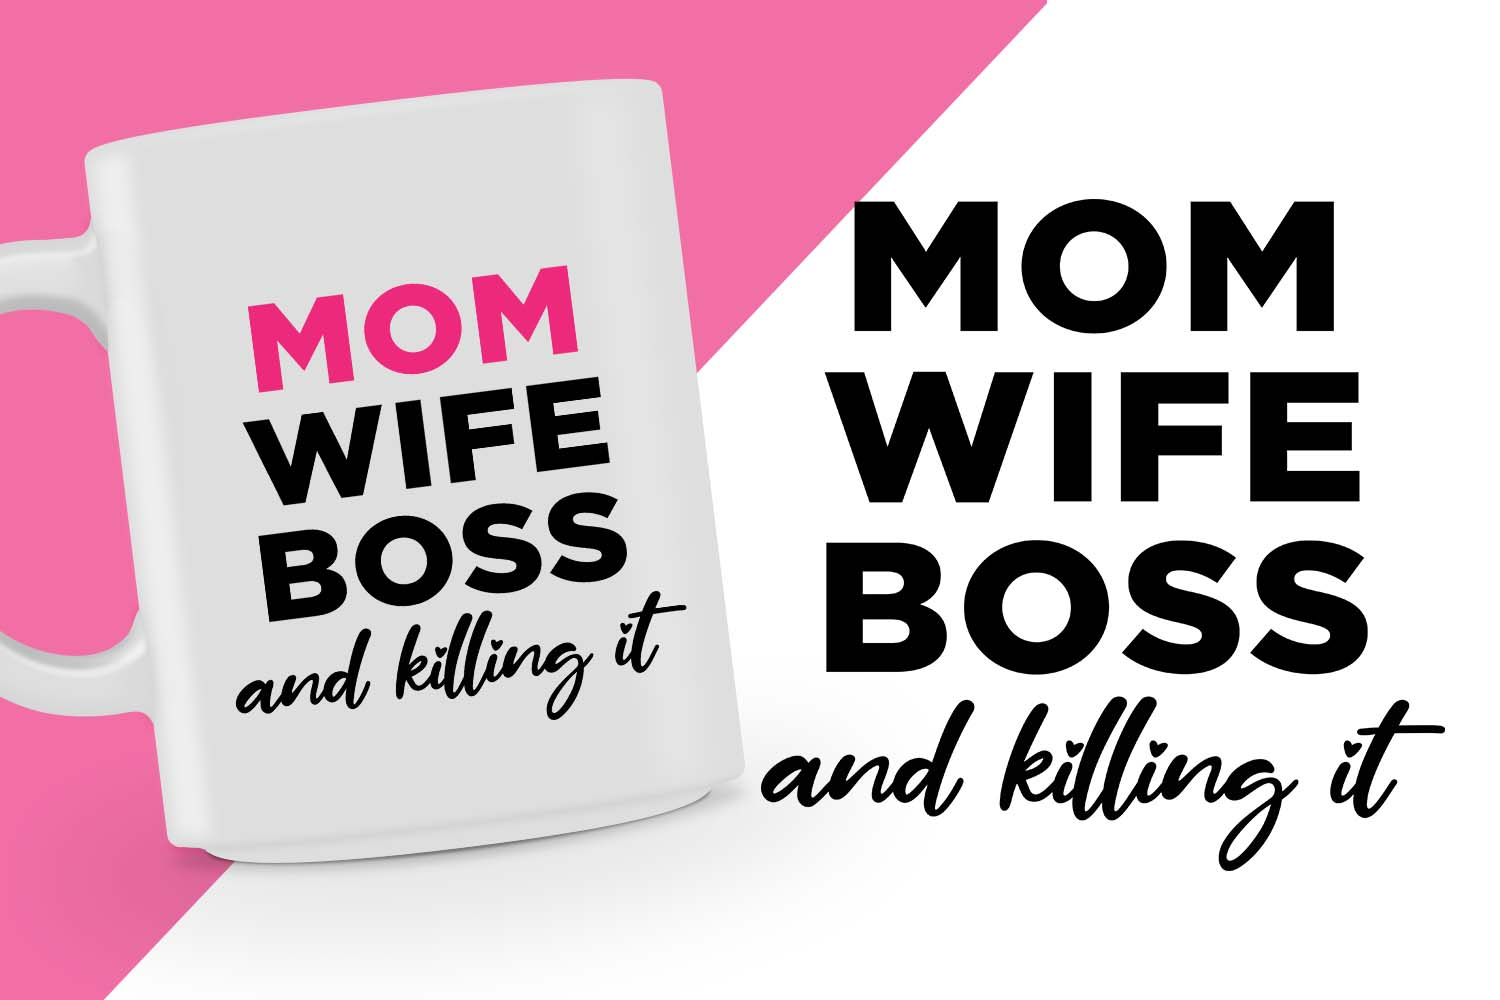 Download Free Mom Wife Boss Svg Design Graphic By Spoonyprint Creative Fabrica for Cricut Explore, Silhouette and other cutting machines.